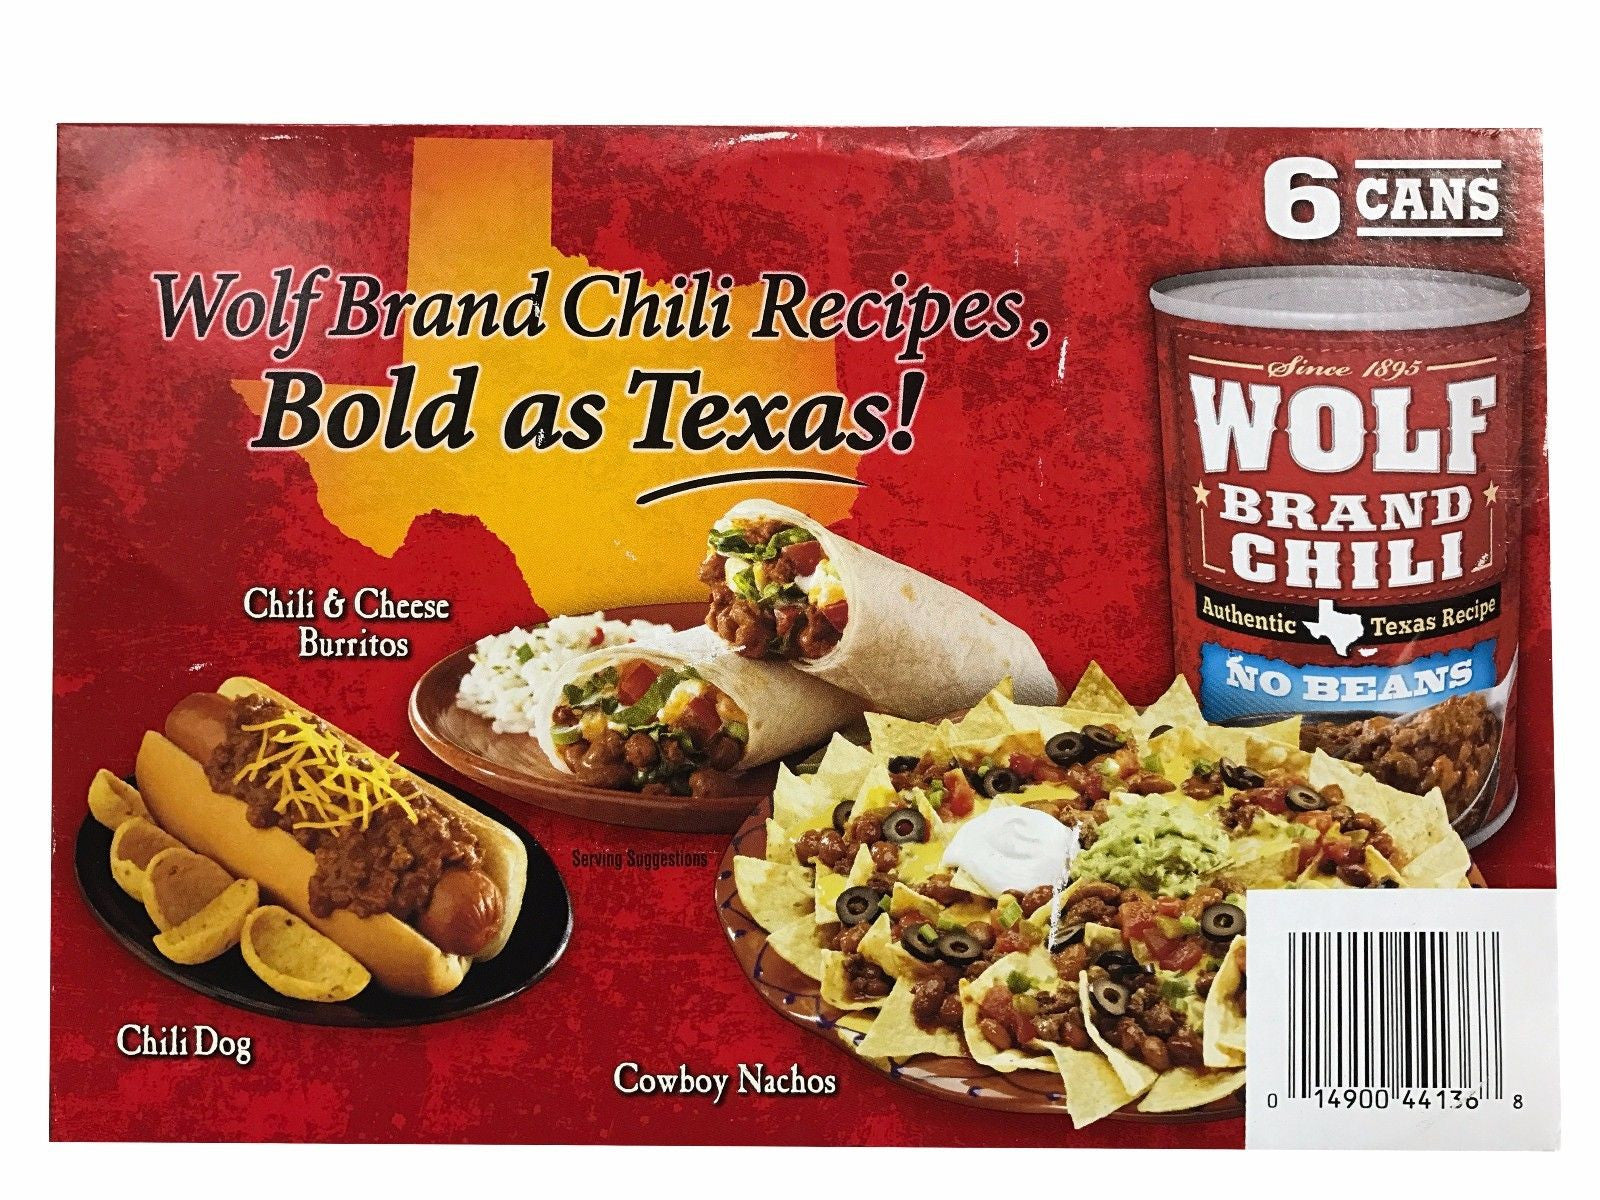 Wolf Brand Authentic Texas Chili Recipe with No Beans 6 Cans 15oz Each